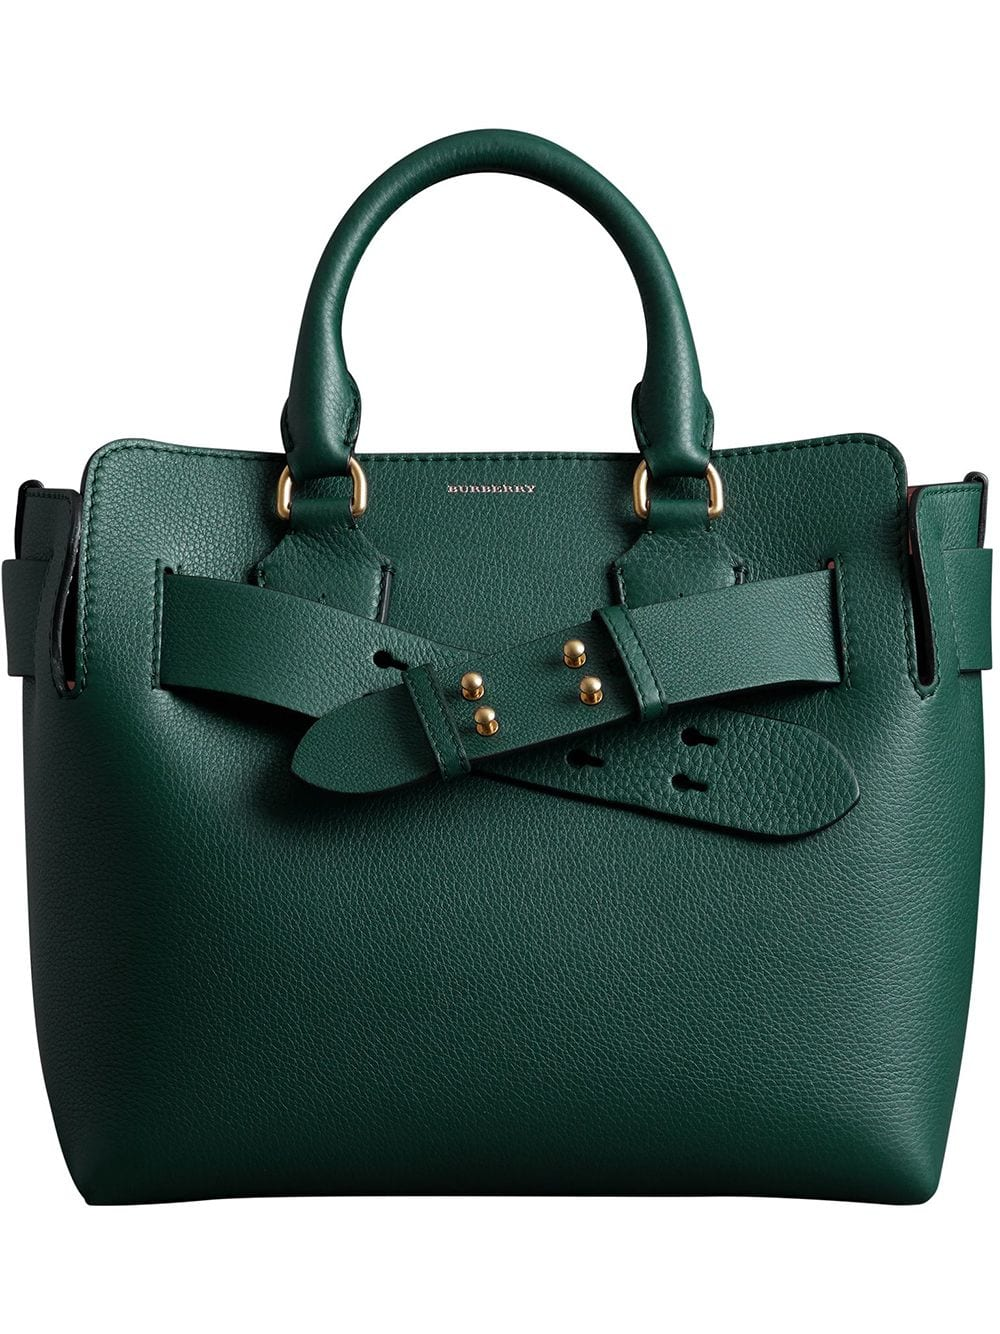 c588794d20 Burberry The Small Leather Belt Bag - Green in 2019 | Products ...